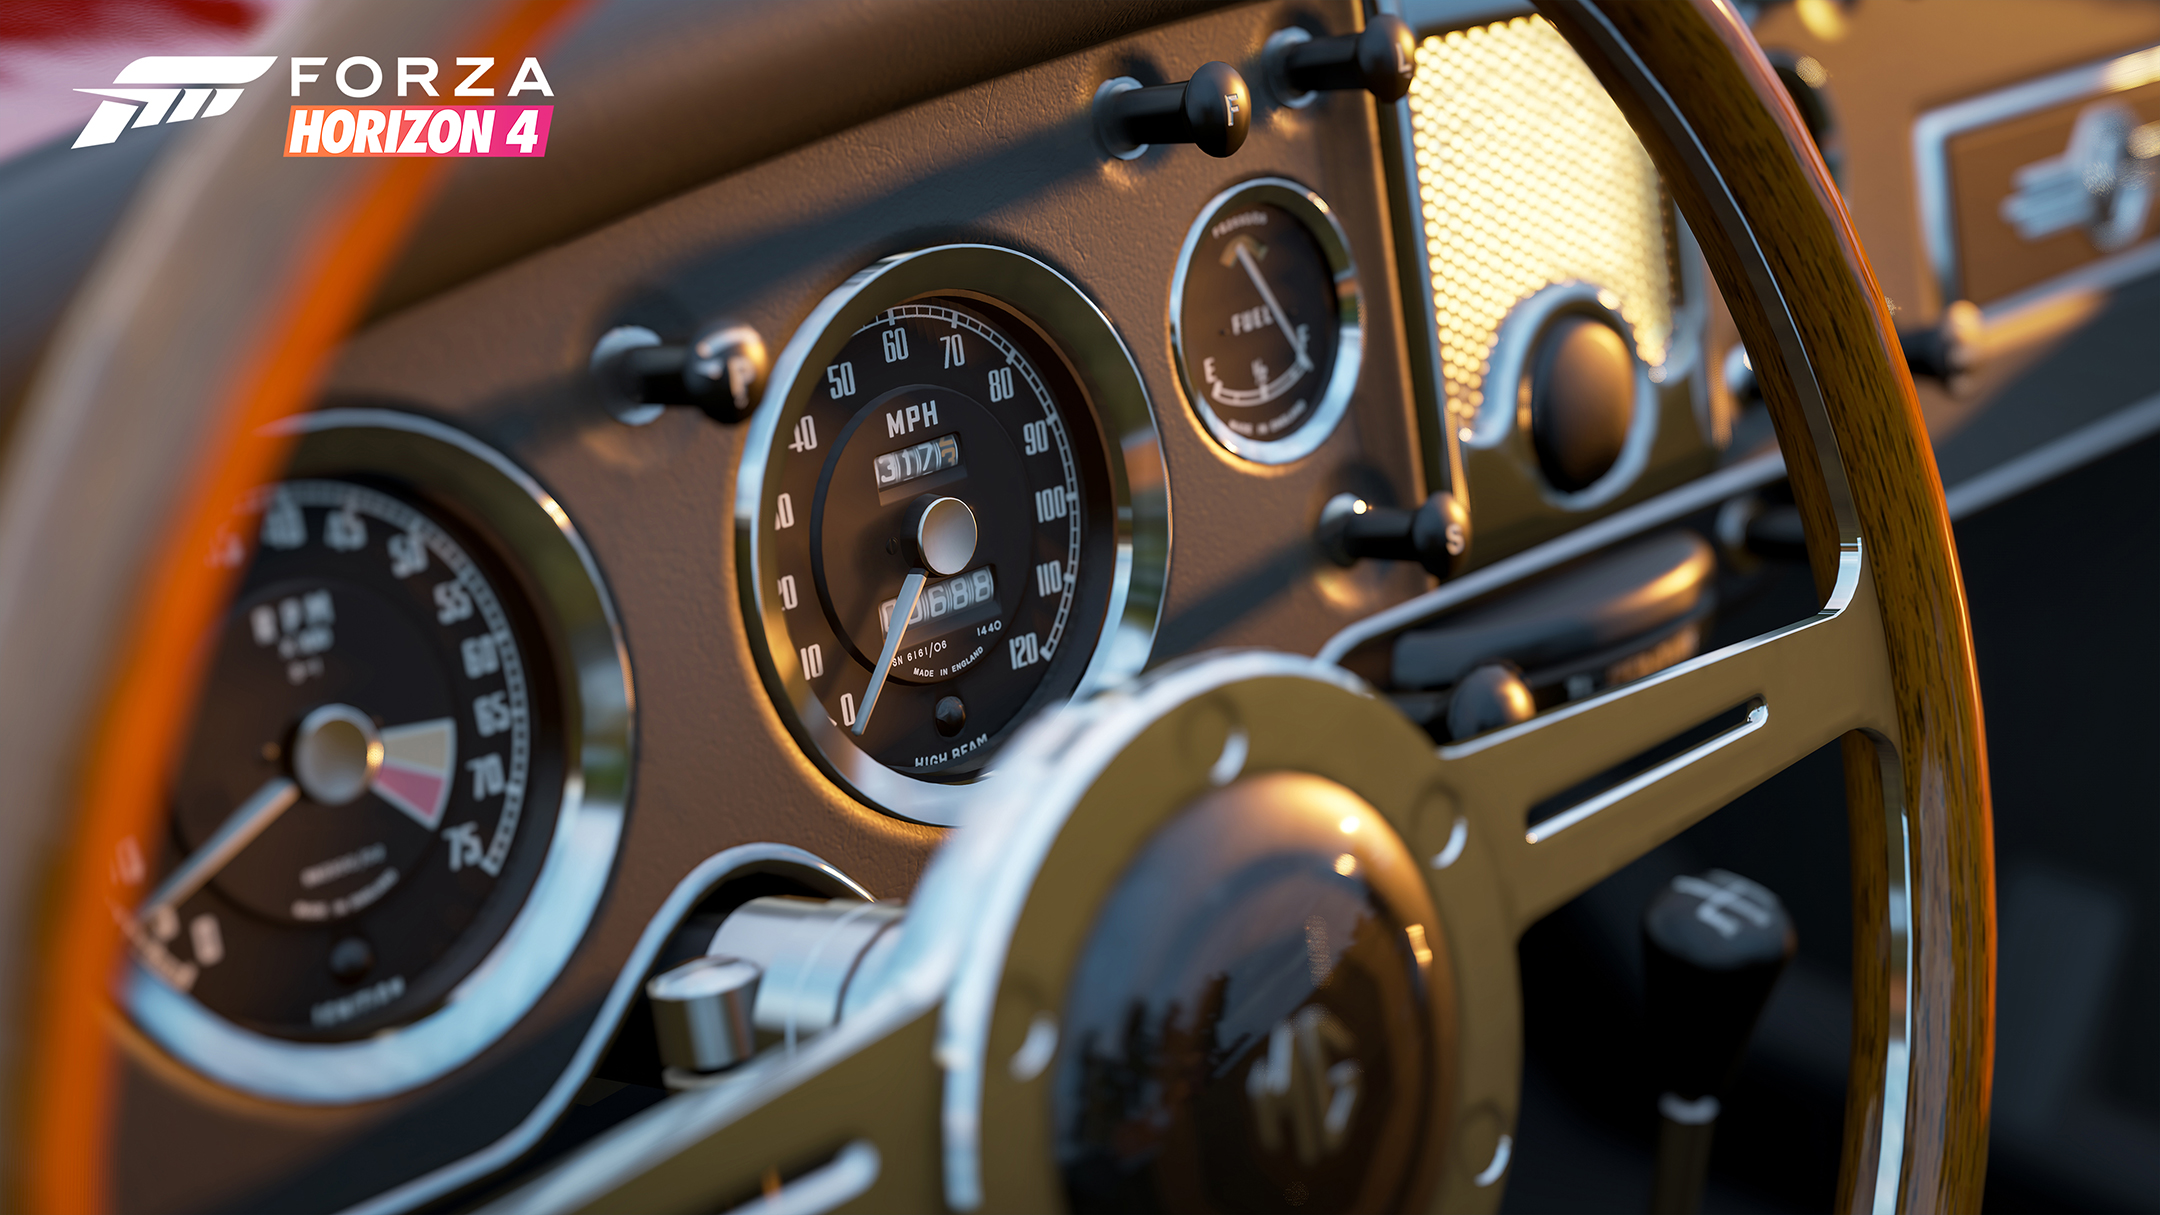 Forza Horizon 4 - 2018 - screen car - MG steering wheel